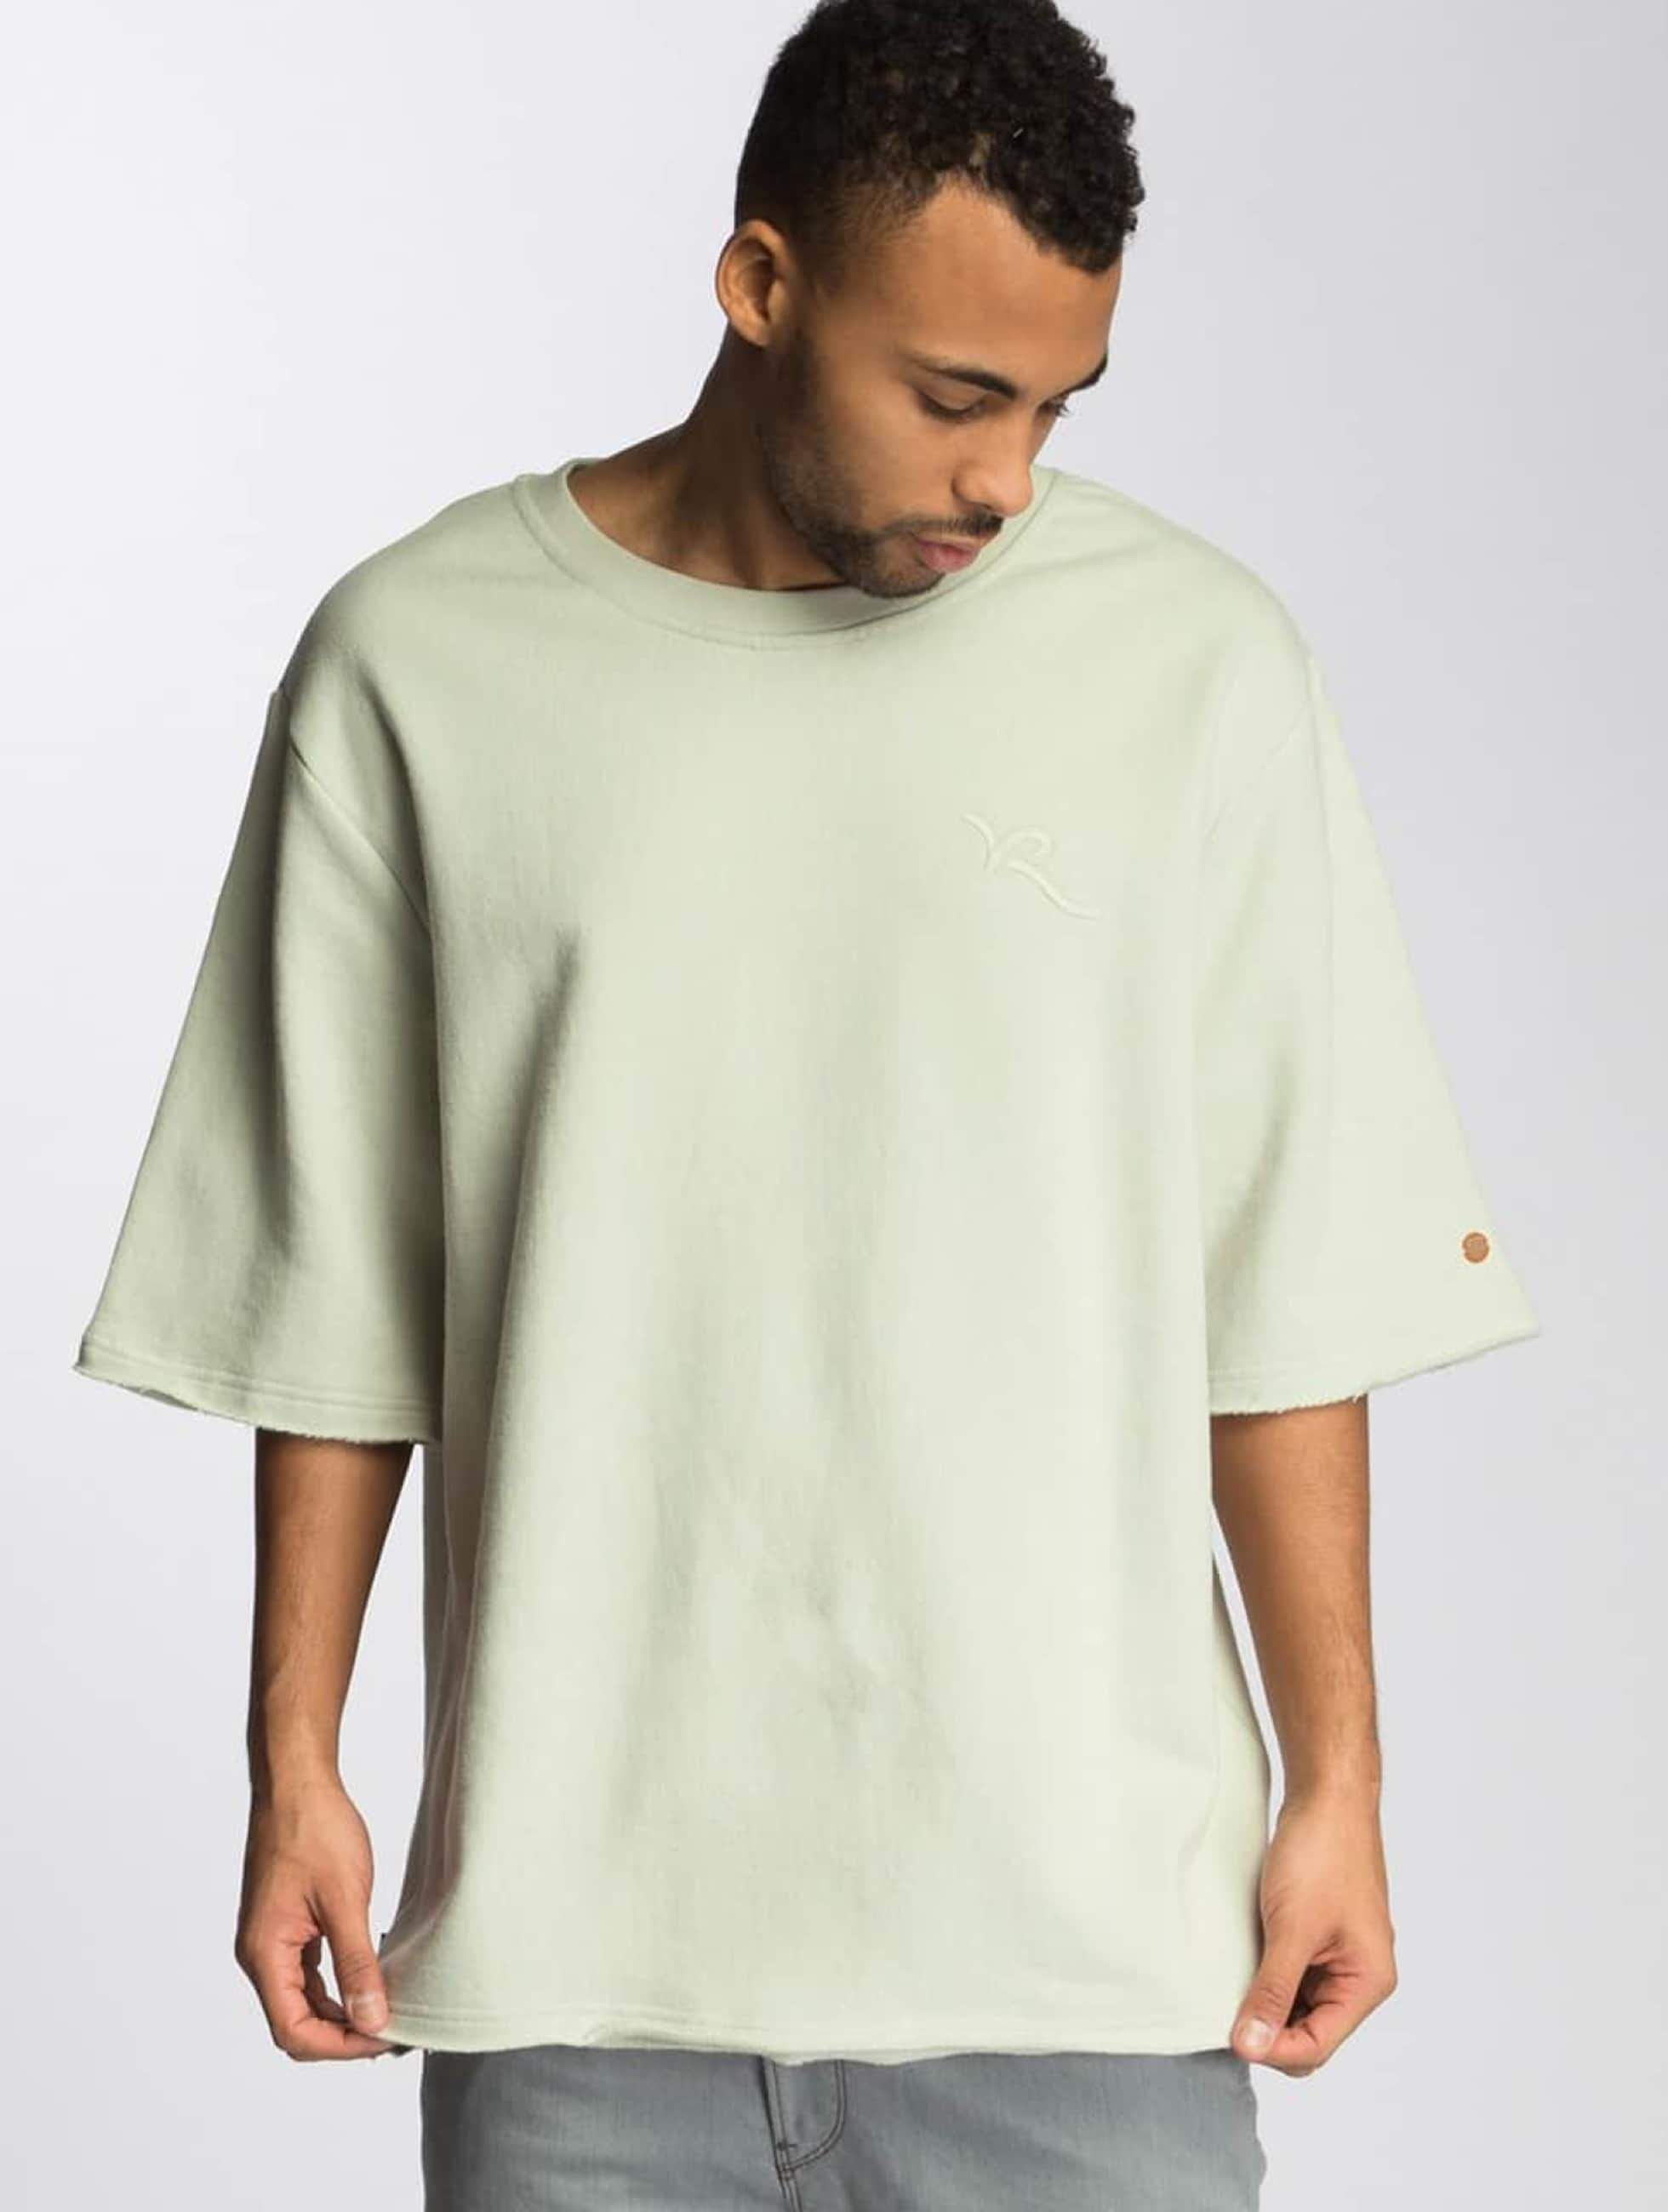 Rocawear / Jumper Oversized in olive M